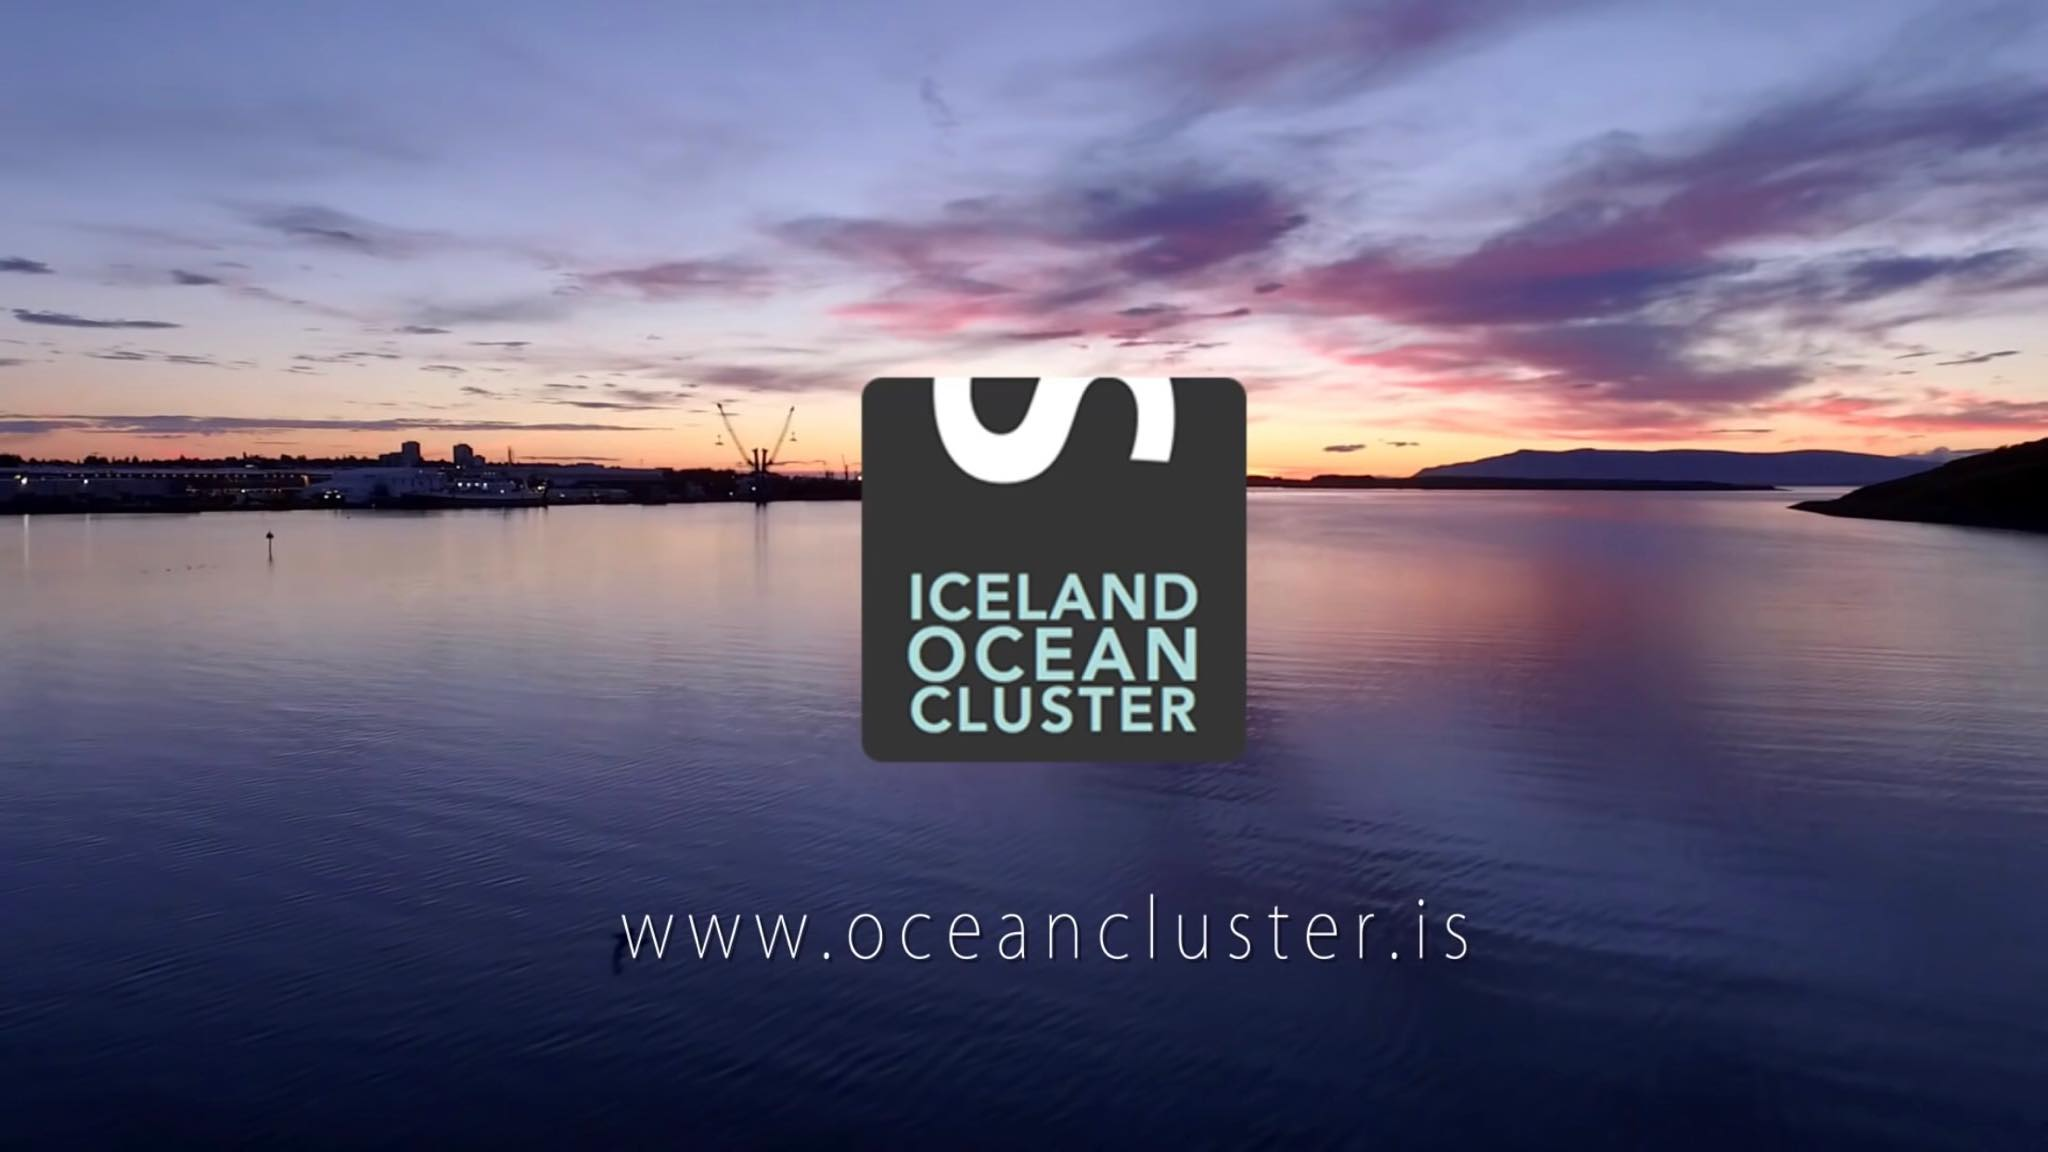 Top 10 Ocean Cluster projects of 2018